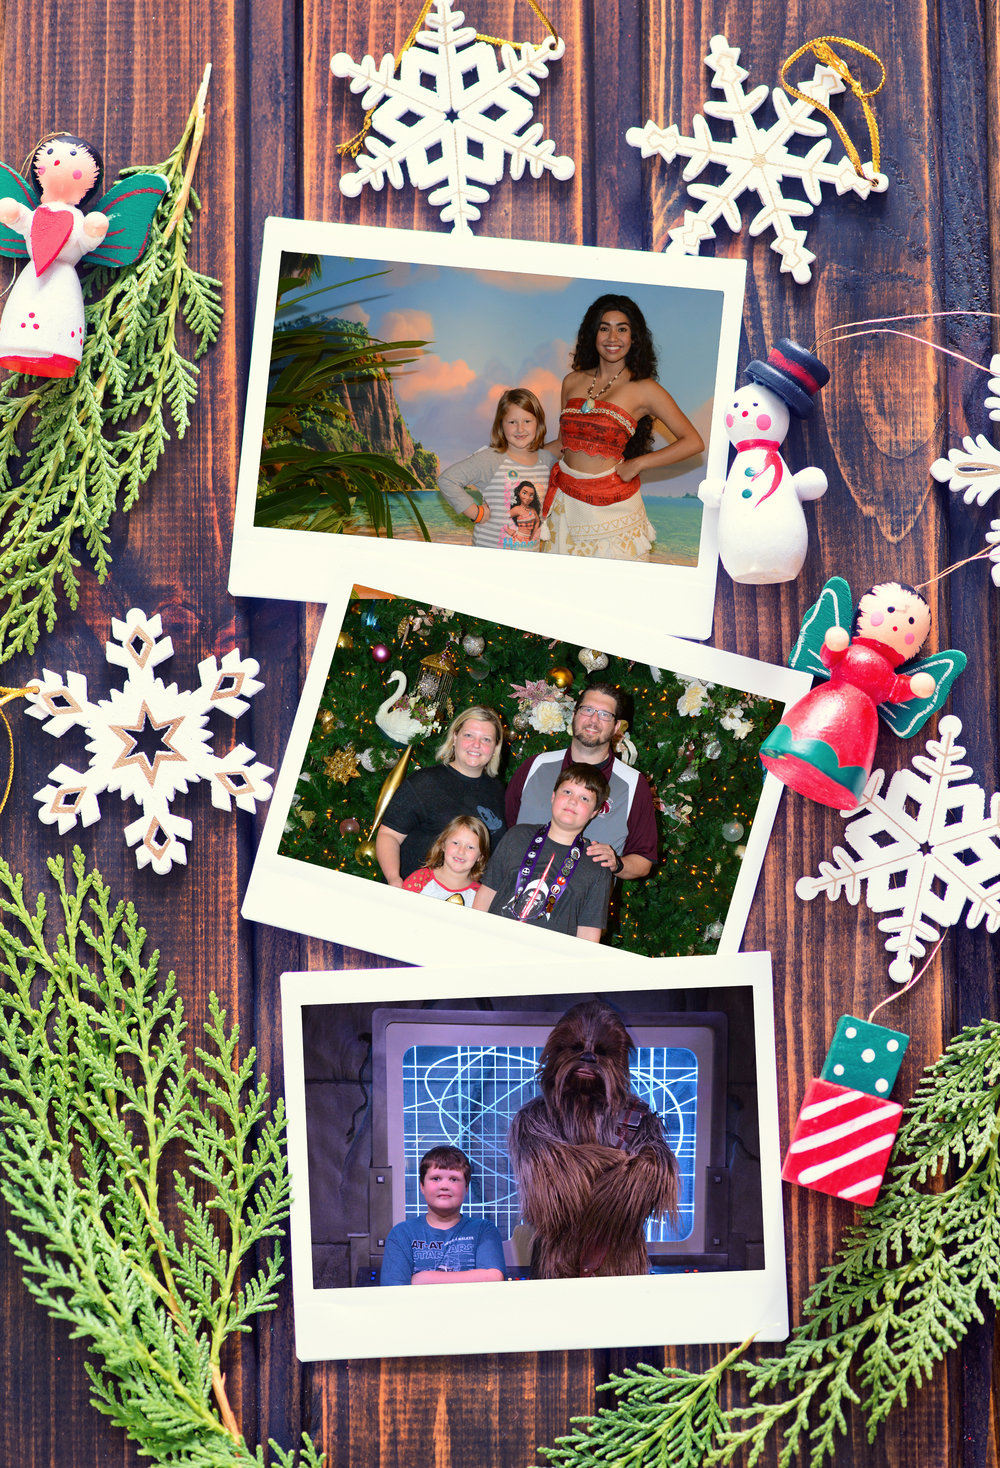 Merry Christmas from Joel, Tracie, Tripp & Chloe!